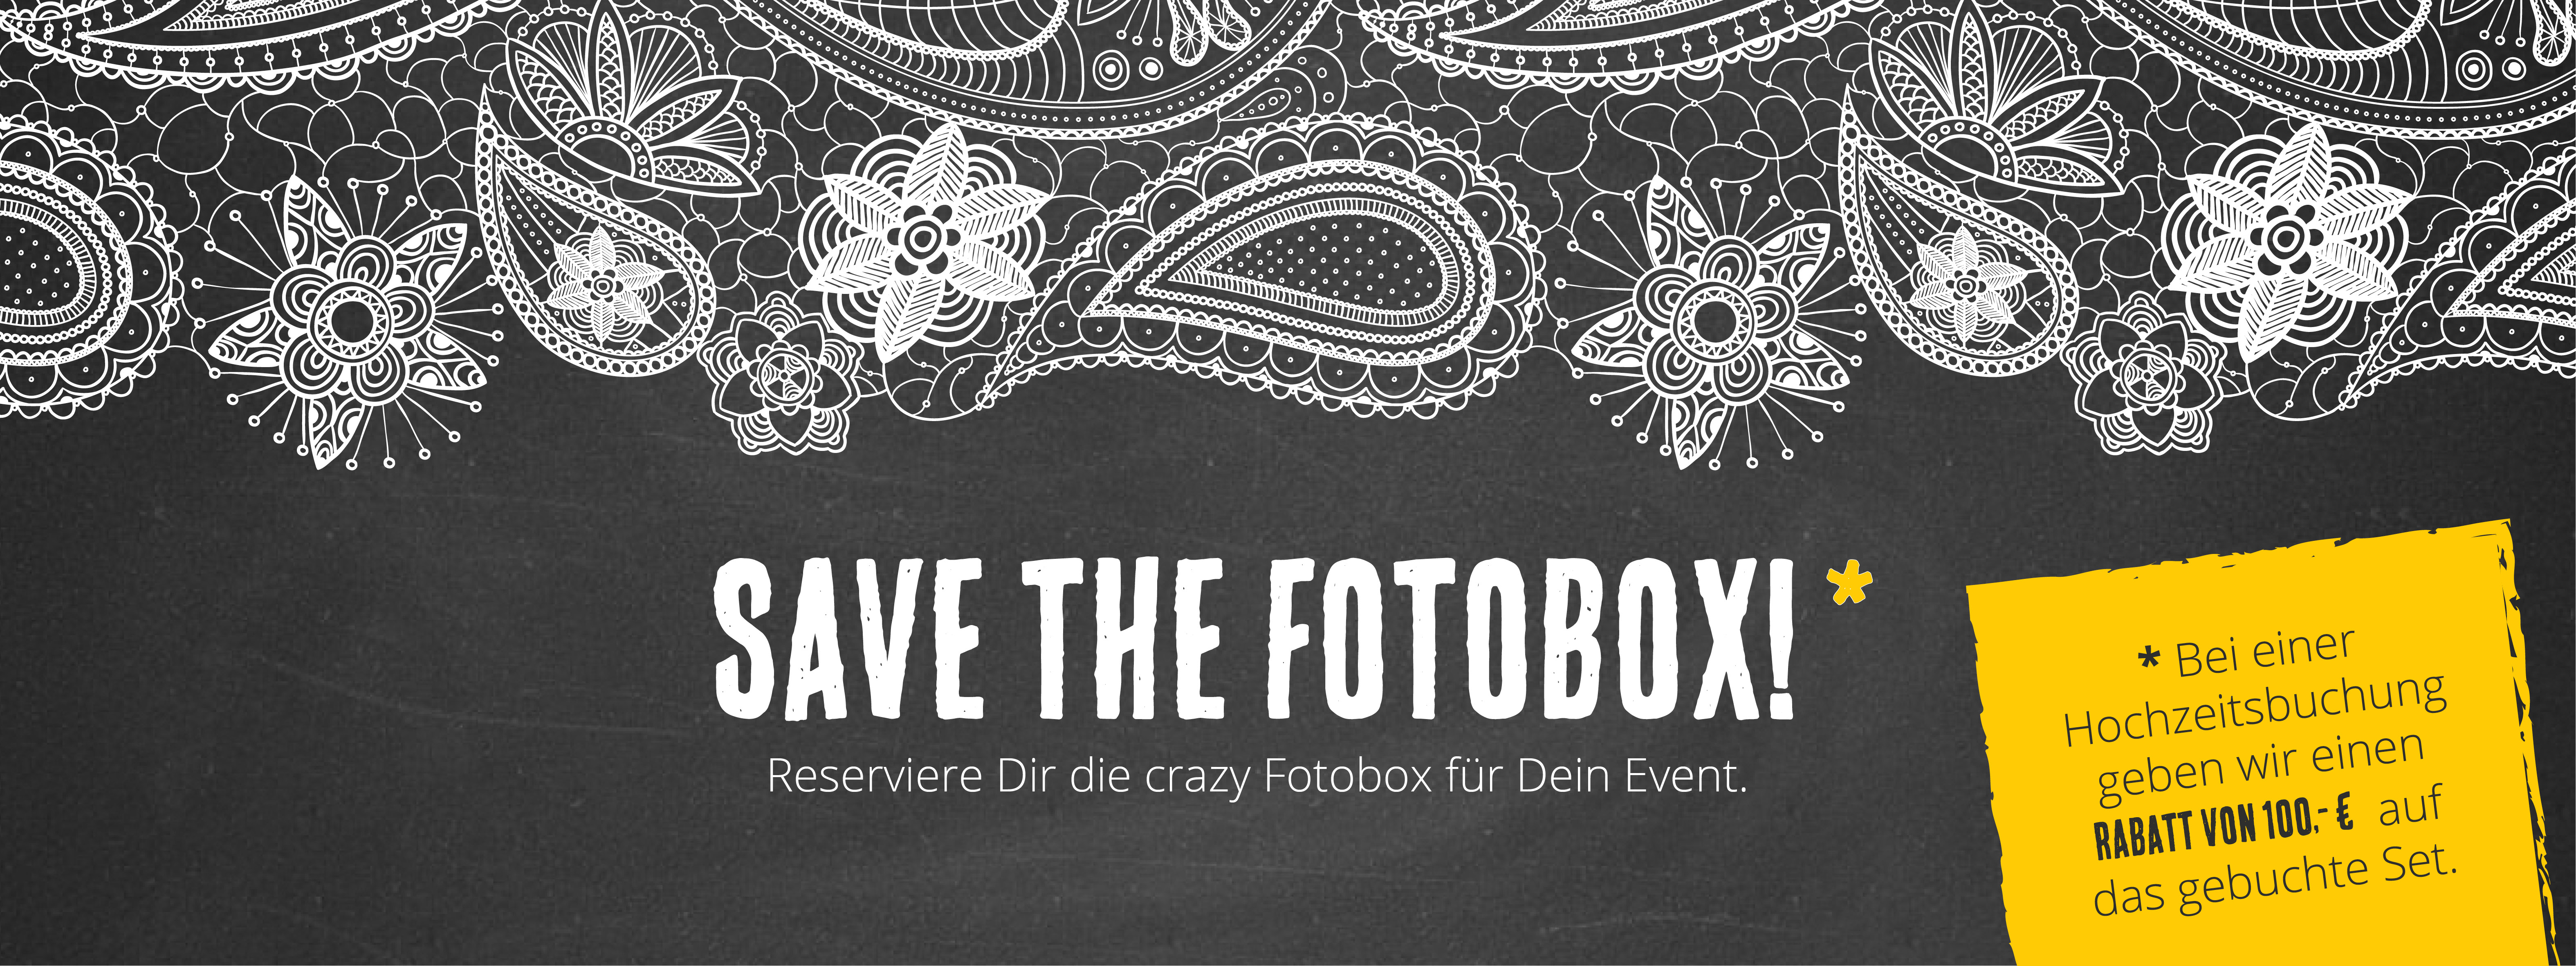 Save the Fotobox!